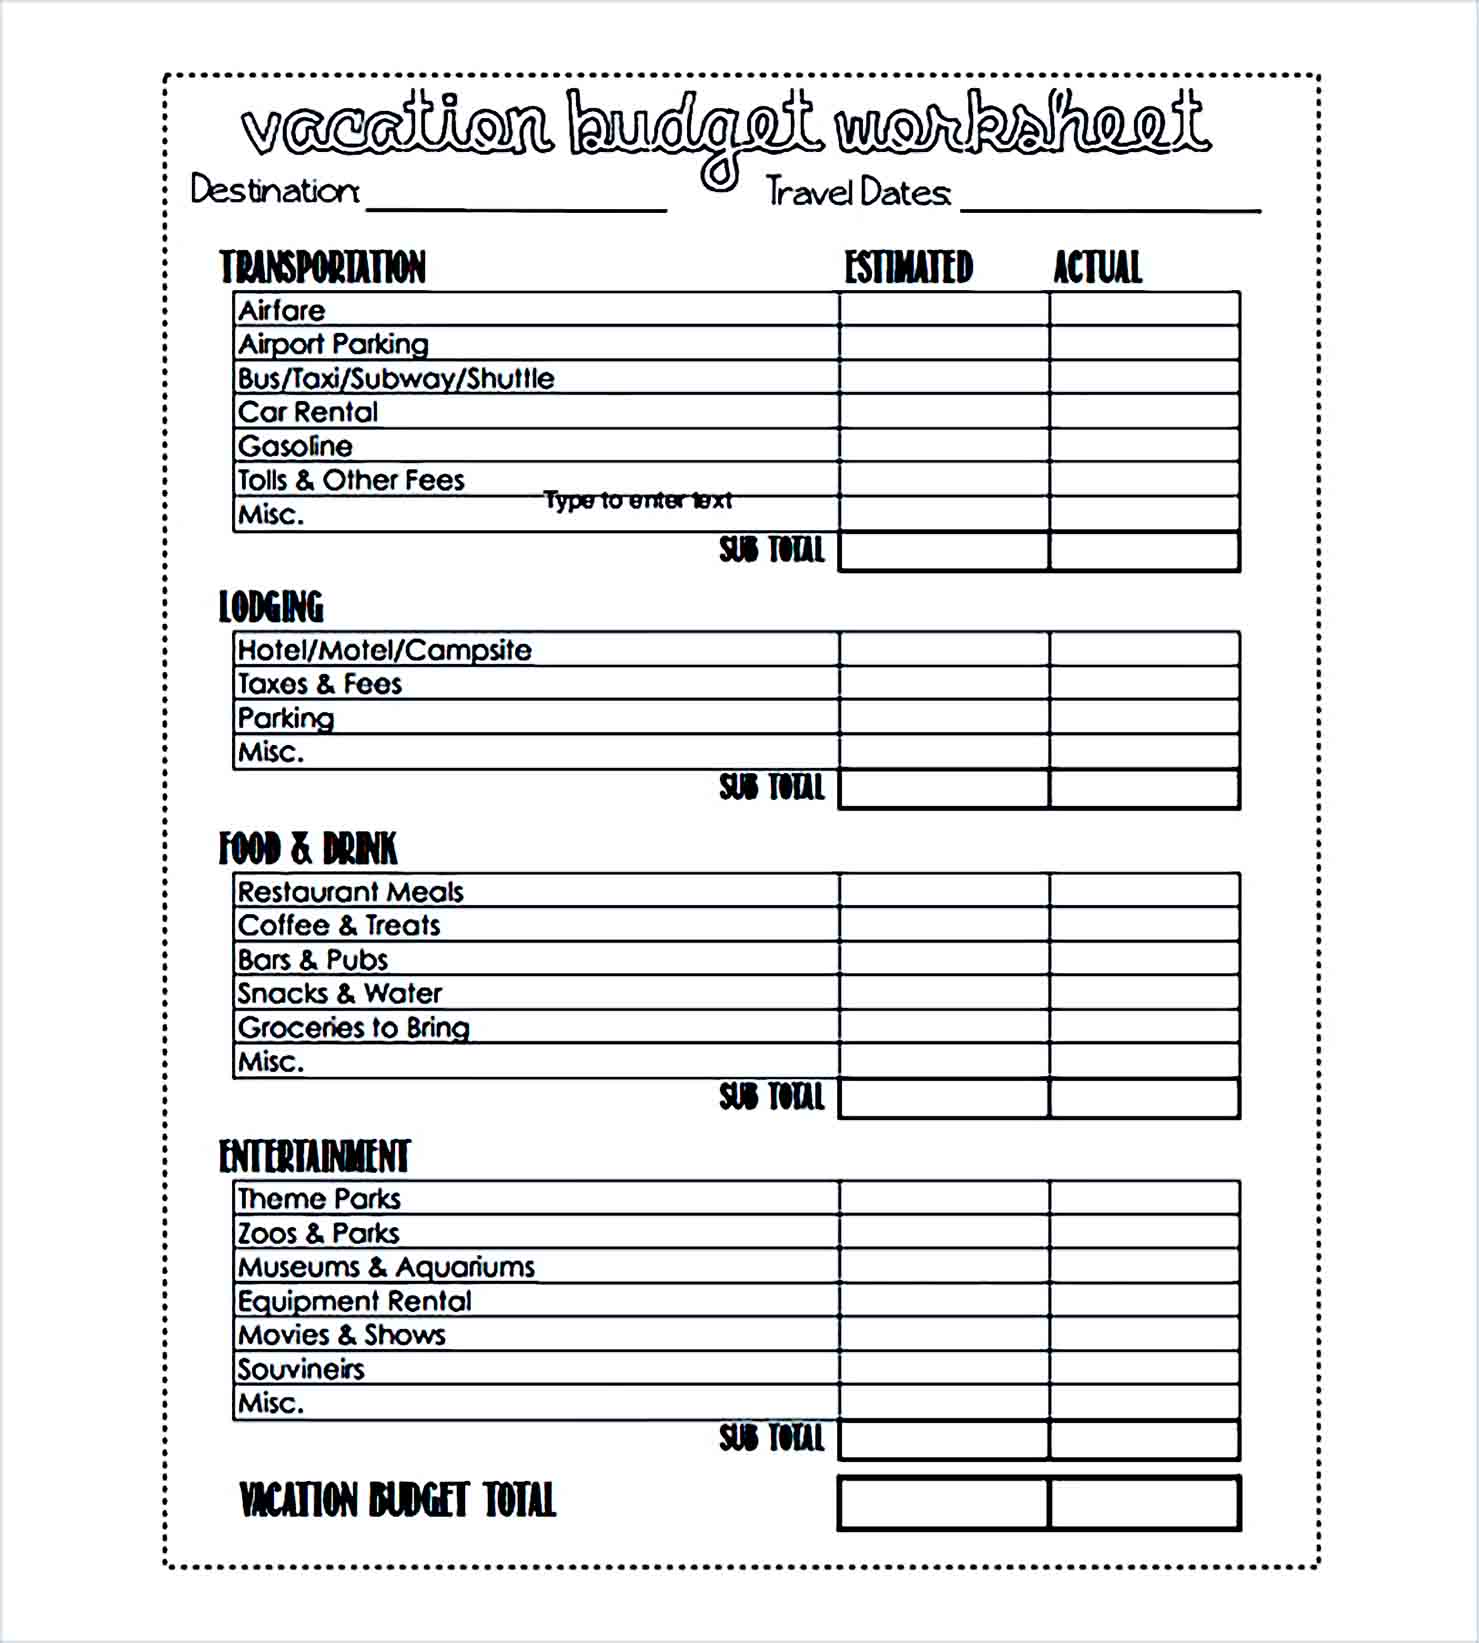 Sample vacation budget worksheet printable